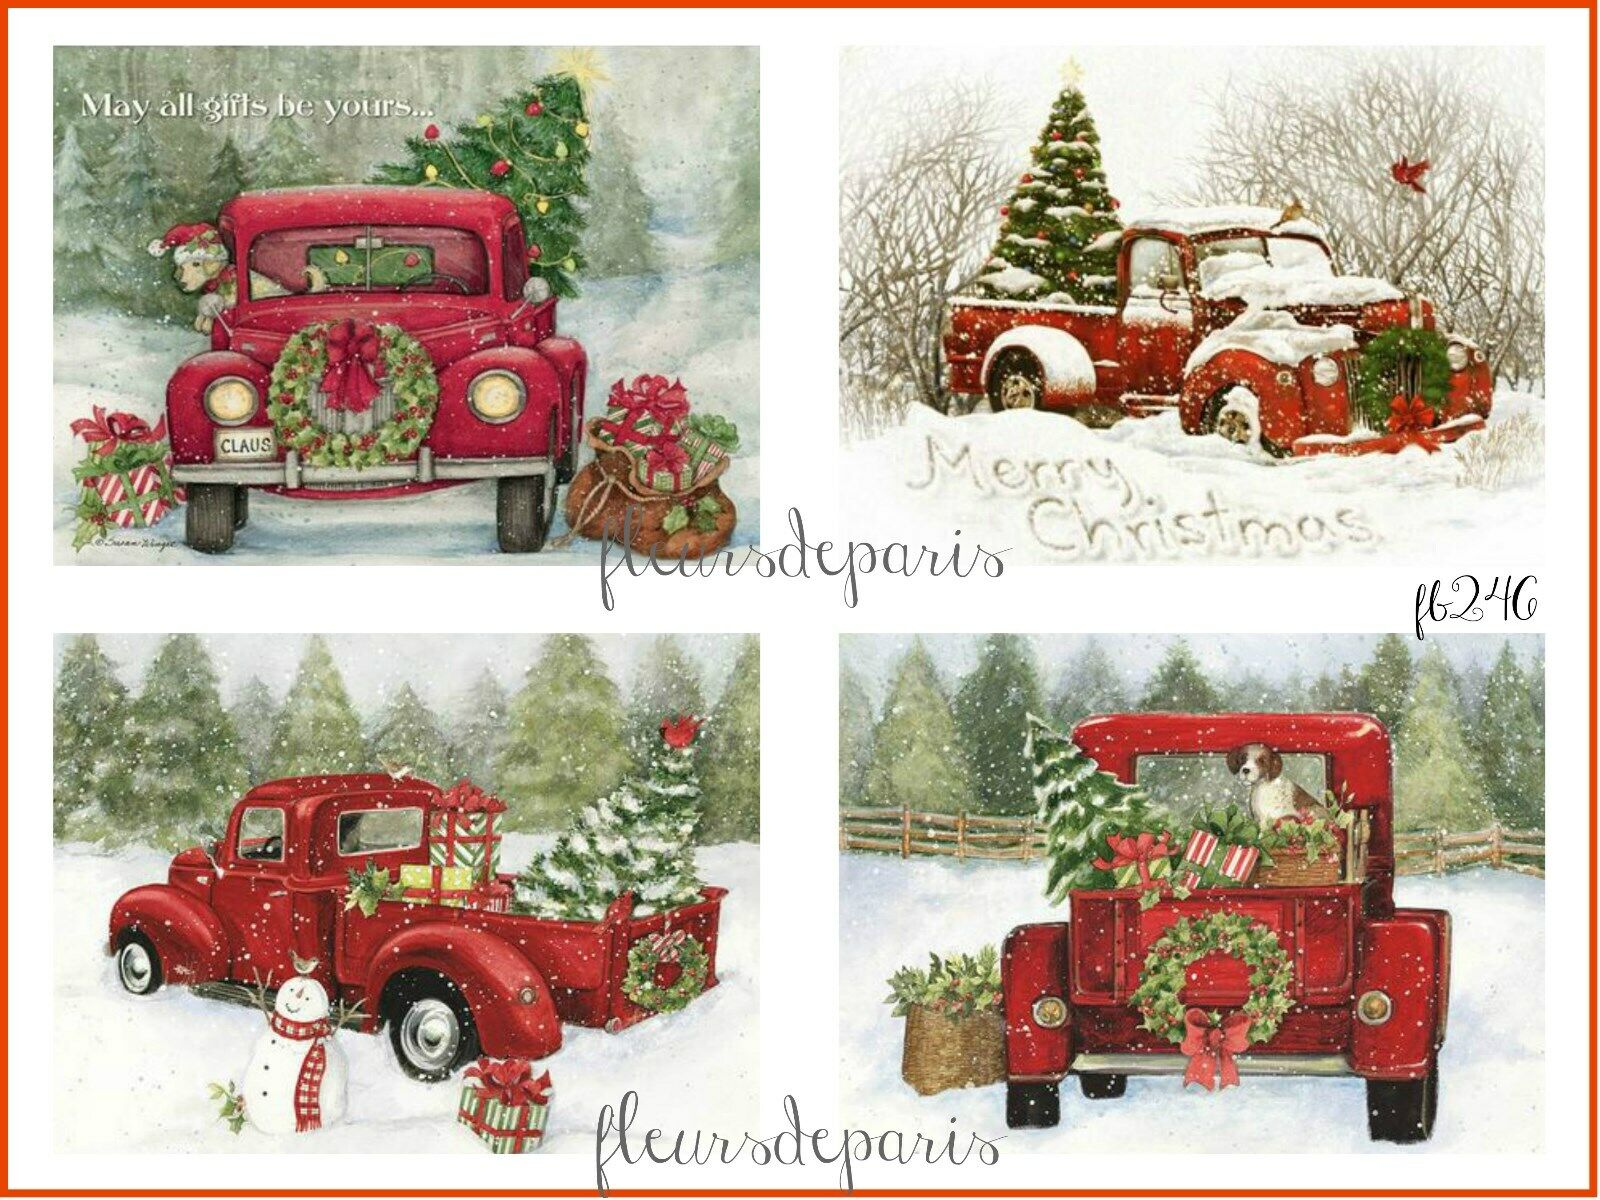 Vintage Christmas.Details About Vintage Christmas Home For The Holidays Red Trucks 4 Prints On Fabric Fb 246